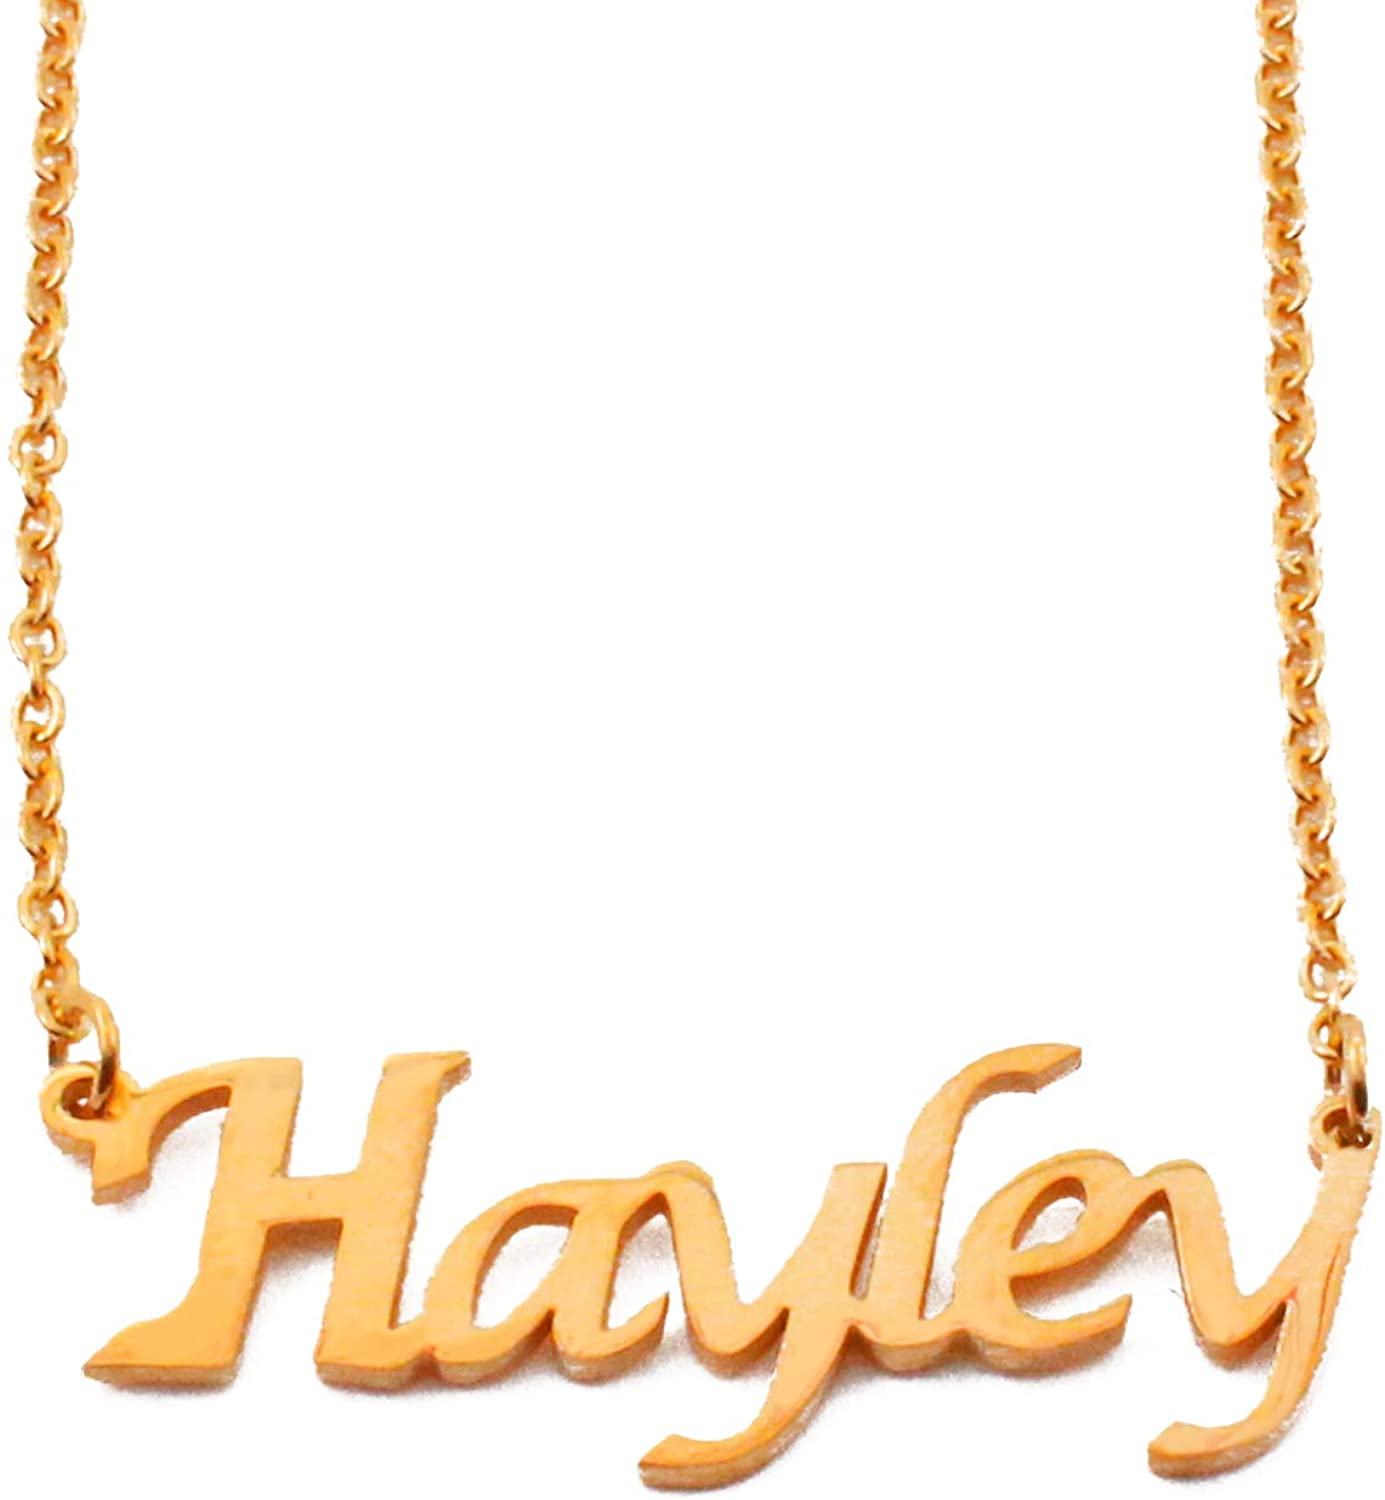 Kigu Hayley Custom Name Necklace Personalized - 18ct Gold Plated